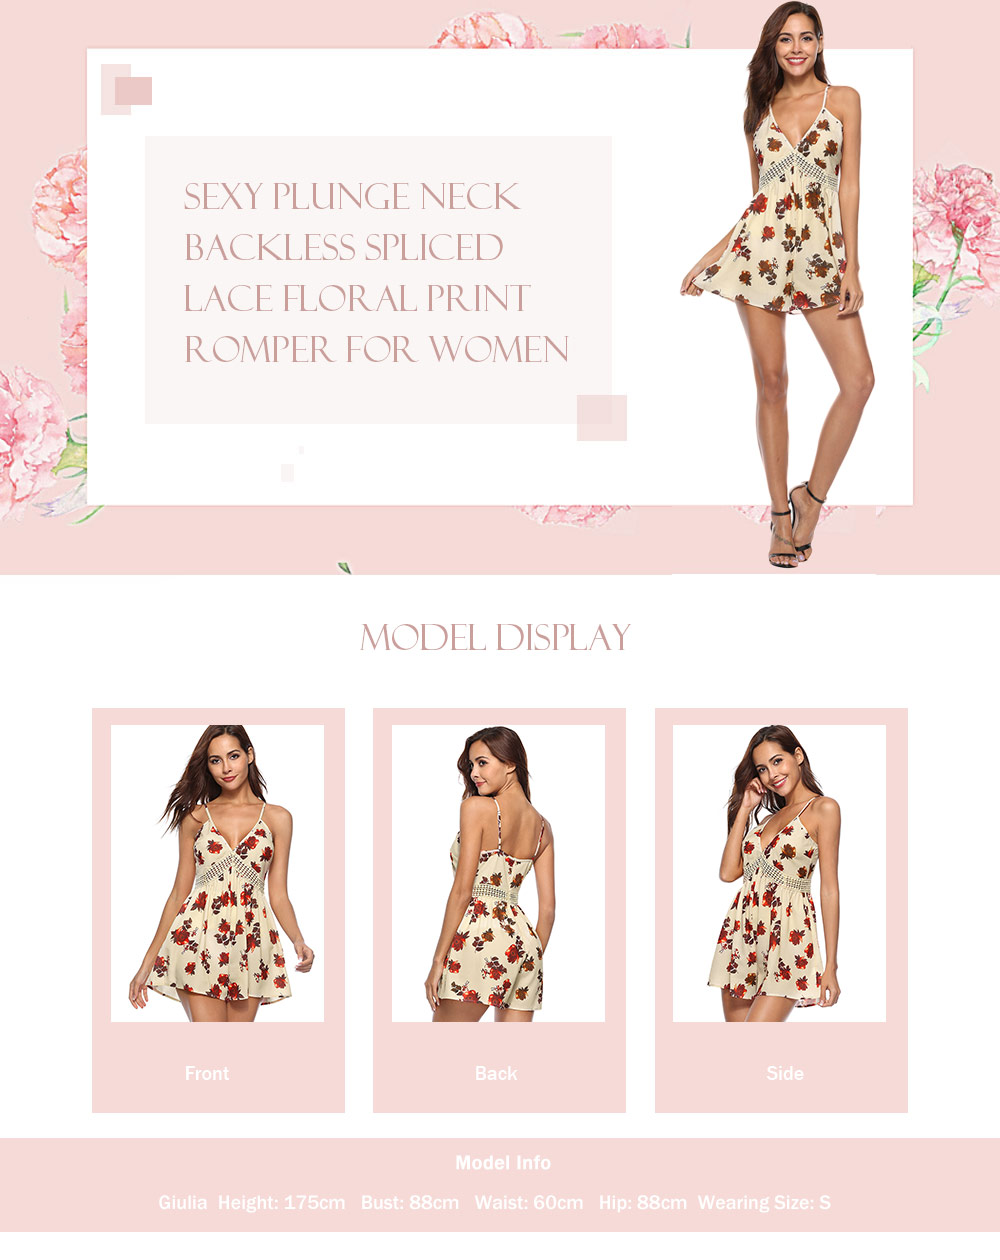 Sexy Plunge Neck Spaghetti Strap Backless Spliced Lace Floral Print Playsuit Women Romper